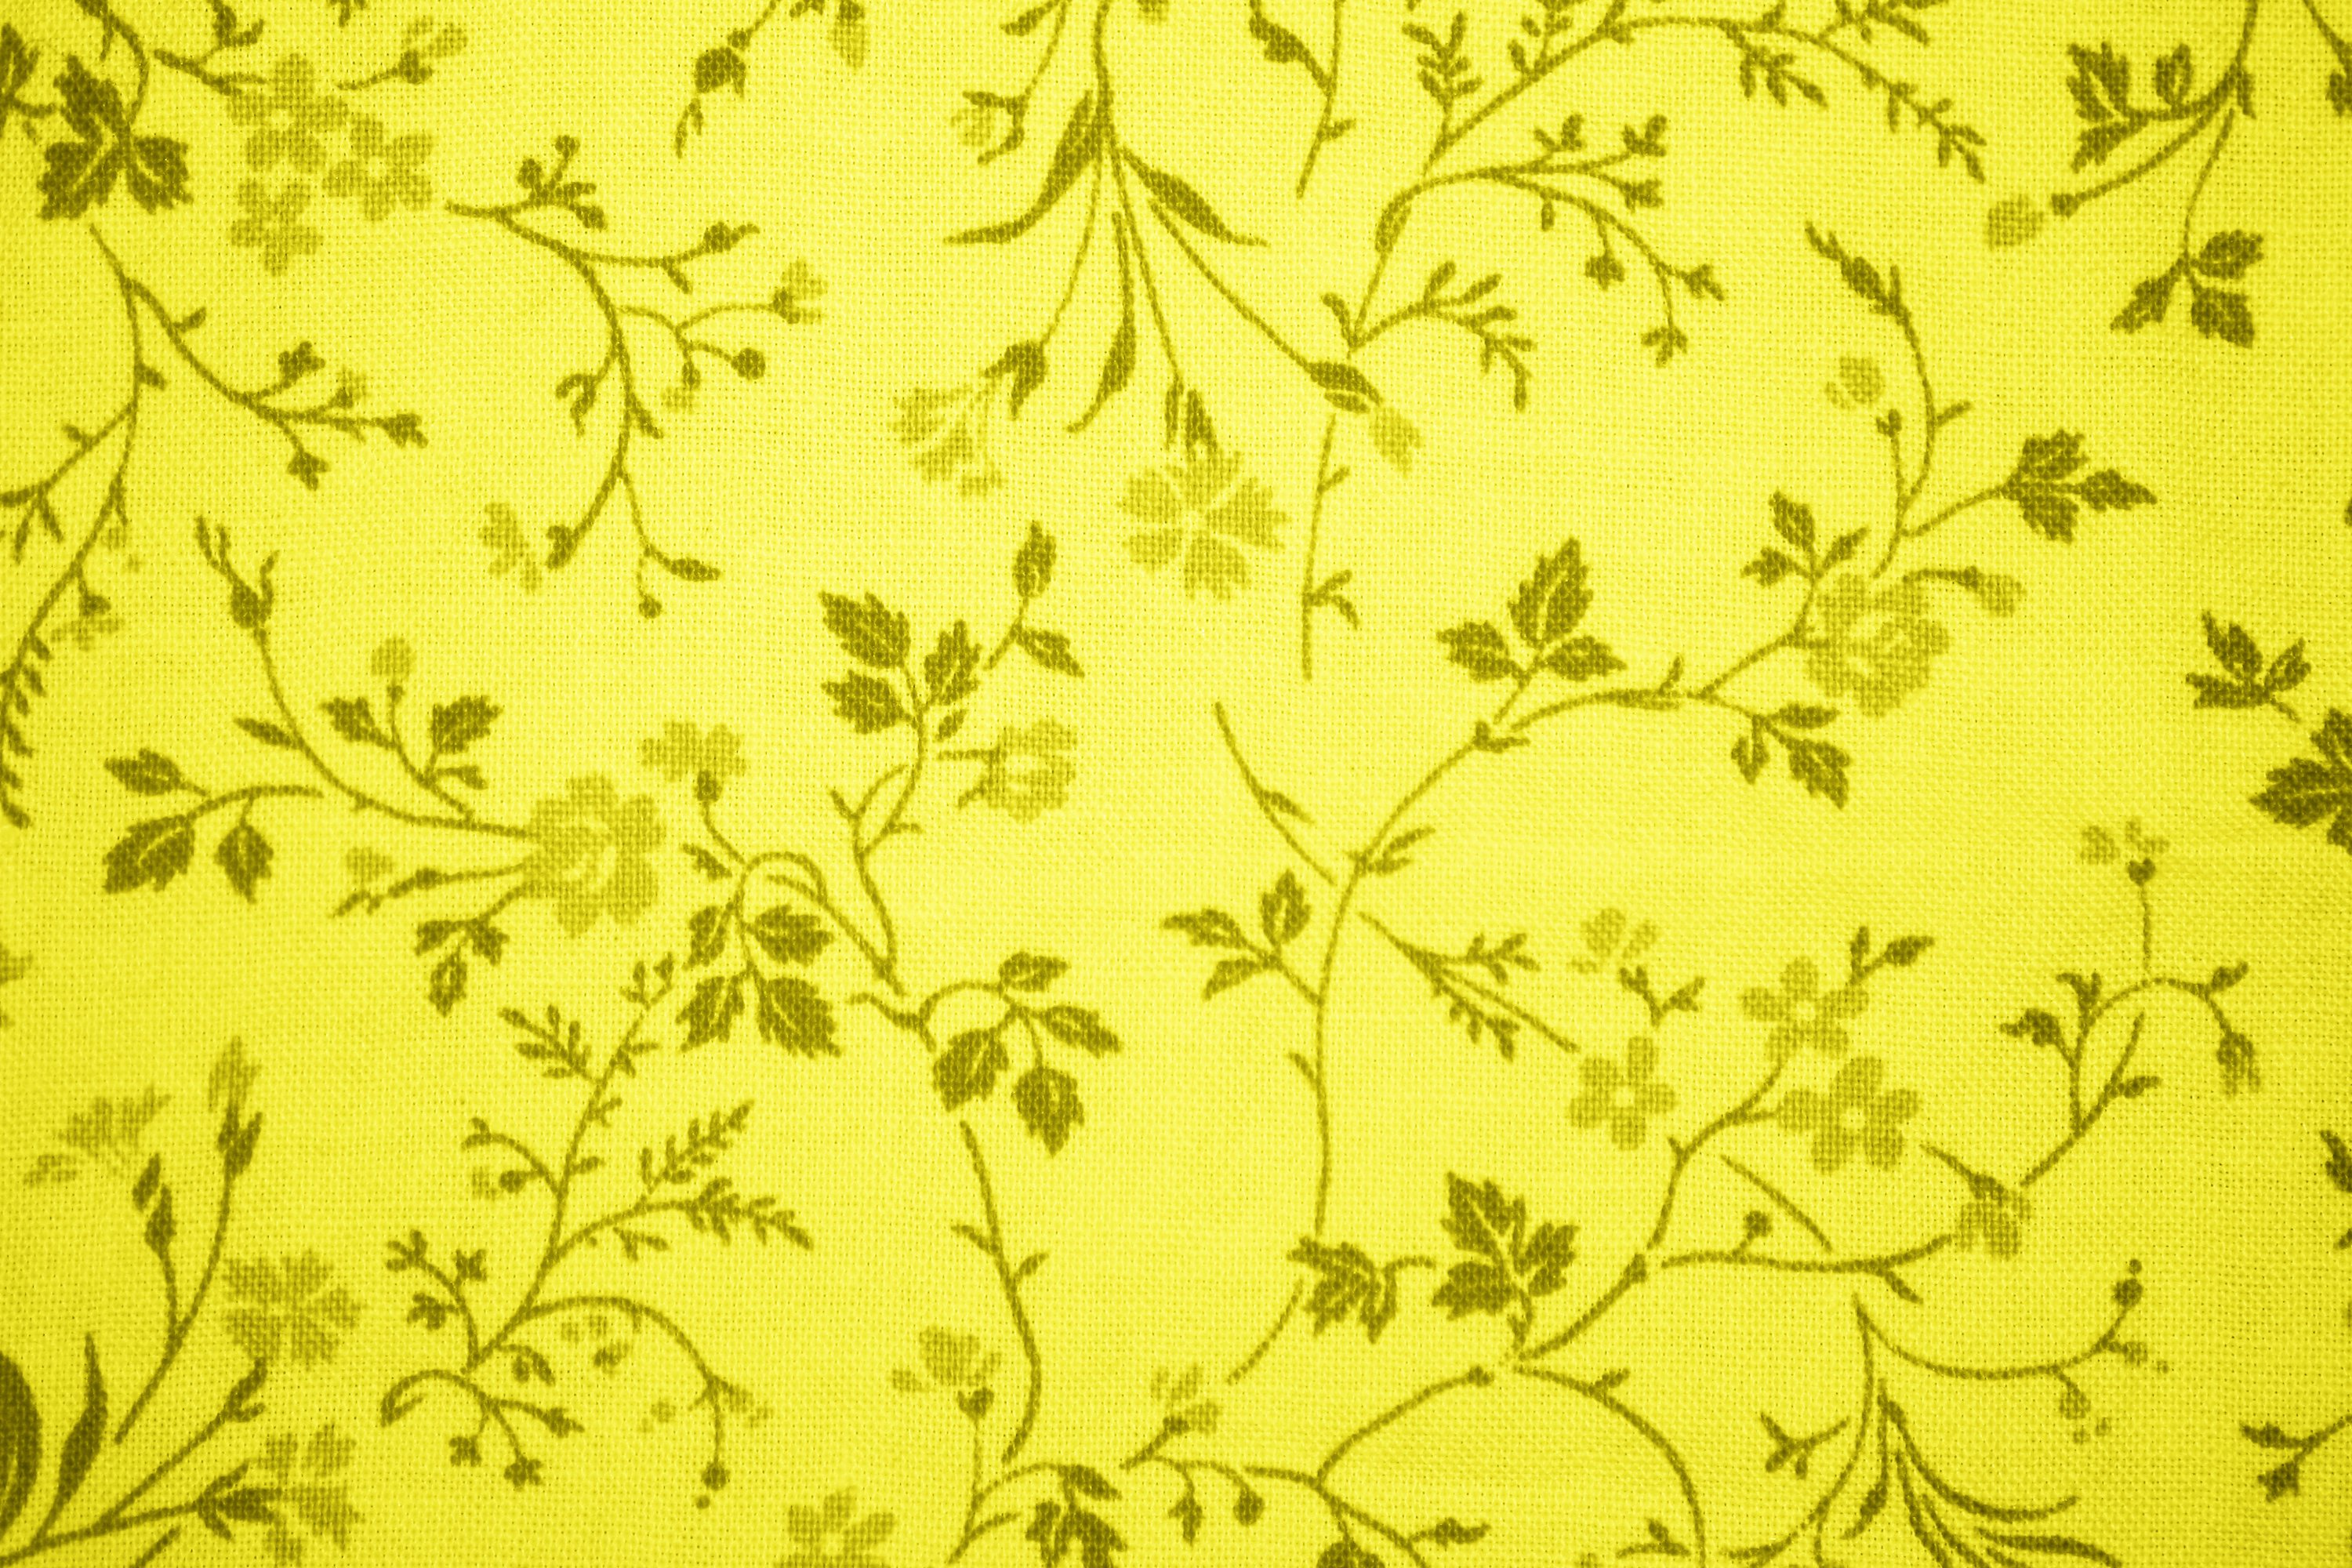 Modern Floral Print For Fabric Seamless Pattern Of Various Colors